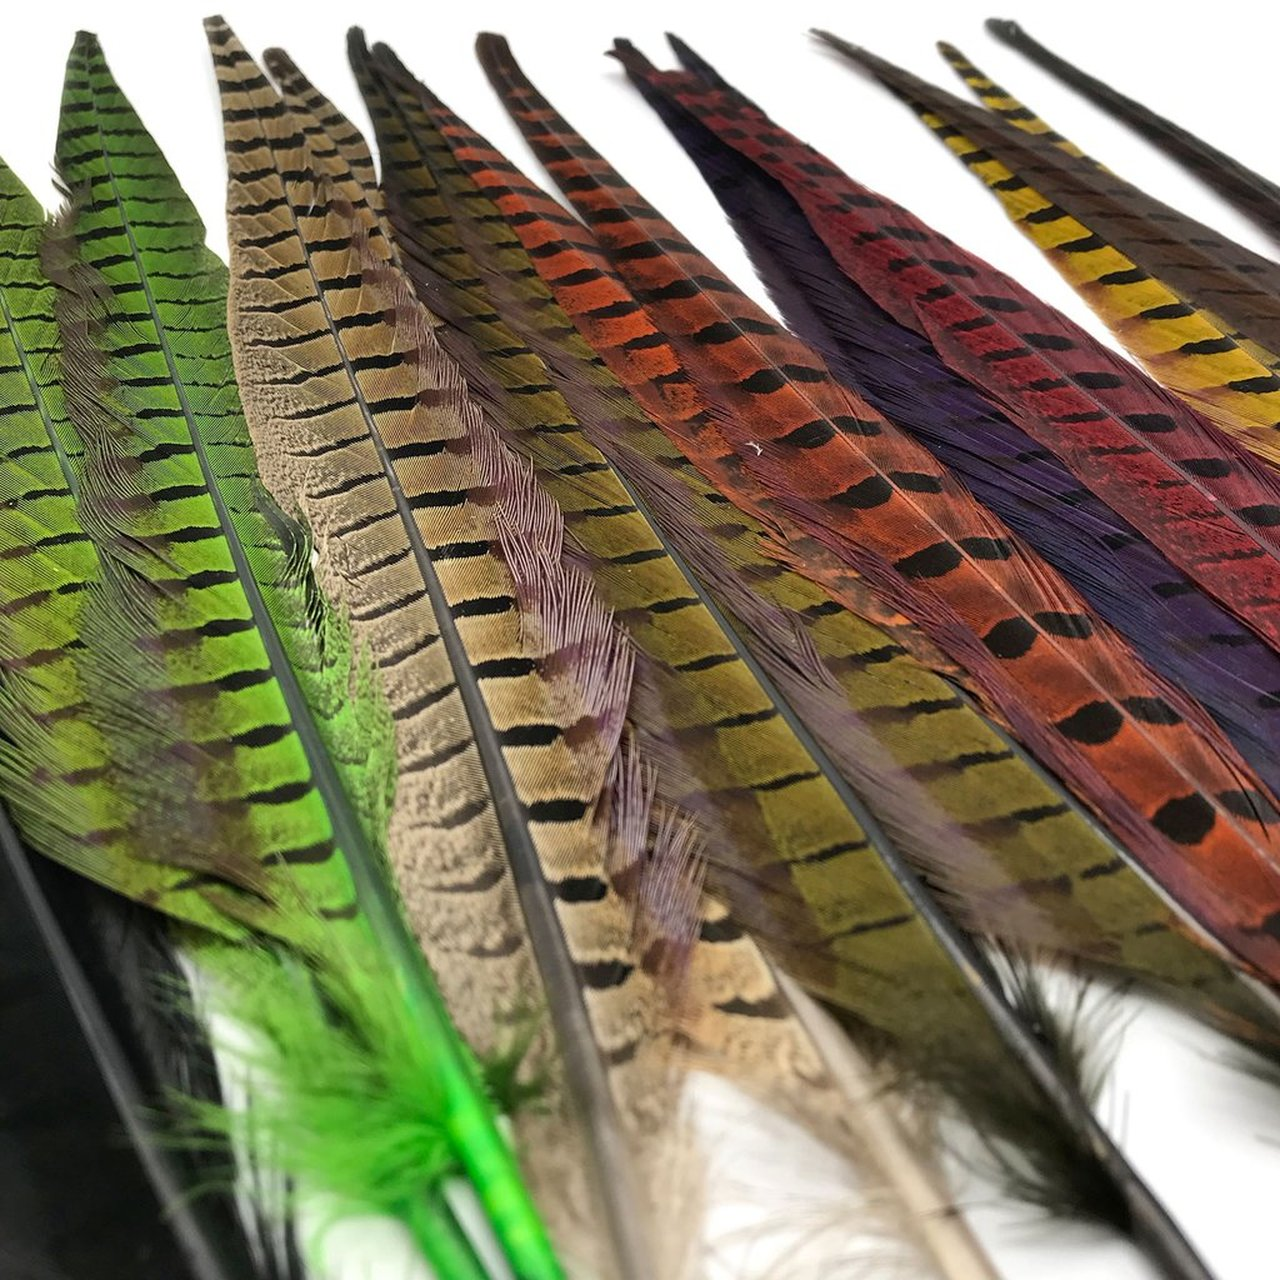 Fly Tying Materials Cock Pheasant Neck Feathers 4 Grams Natural Brown